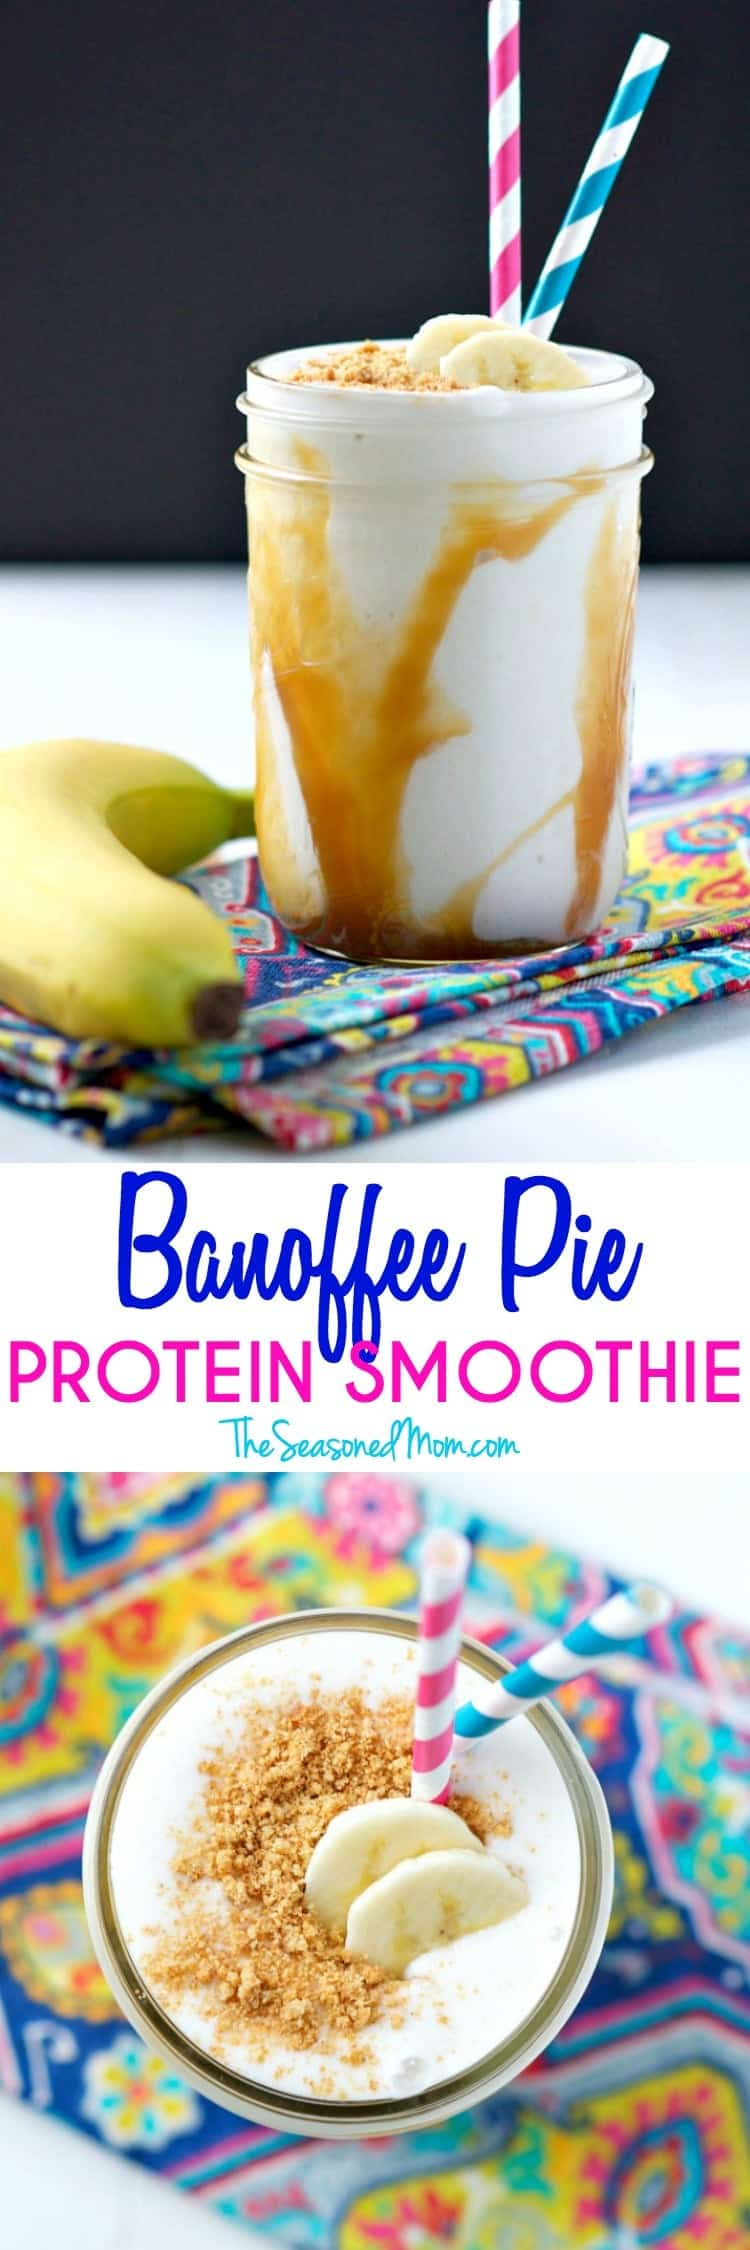 For about 200 calories you can enjoy this cool, creamy, and healthy Banoffee Pie Protein Smoothie! It's a decadent-tasting breakfast or snack that blends banana, caramel, and a graham cracker crust in one delicious clean eating recipe!